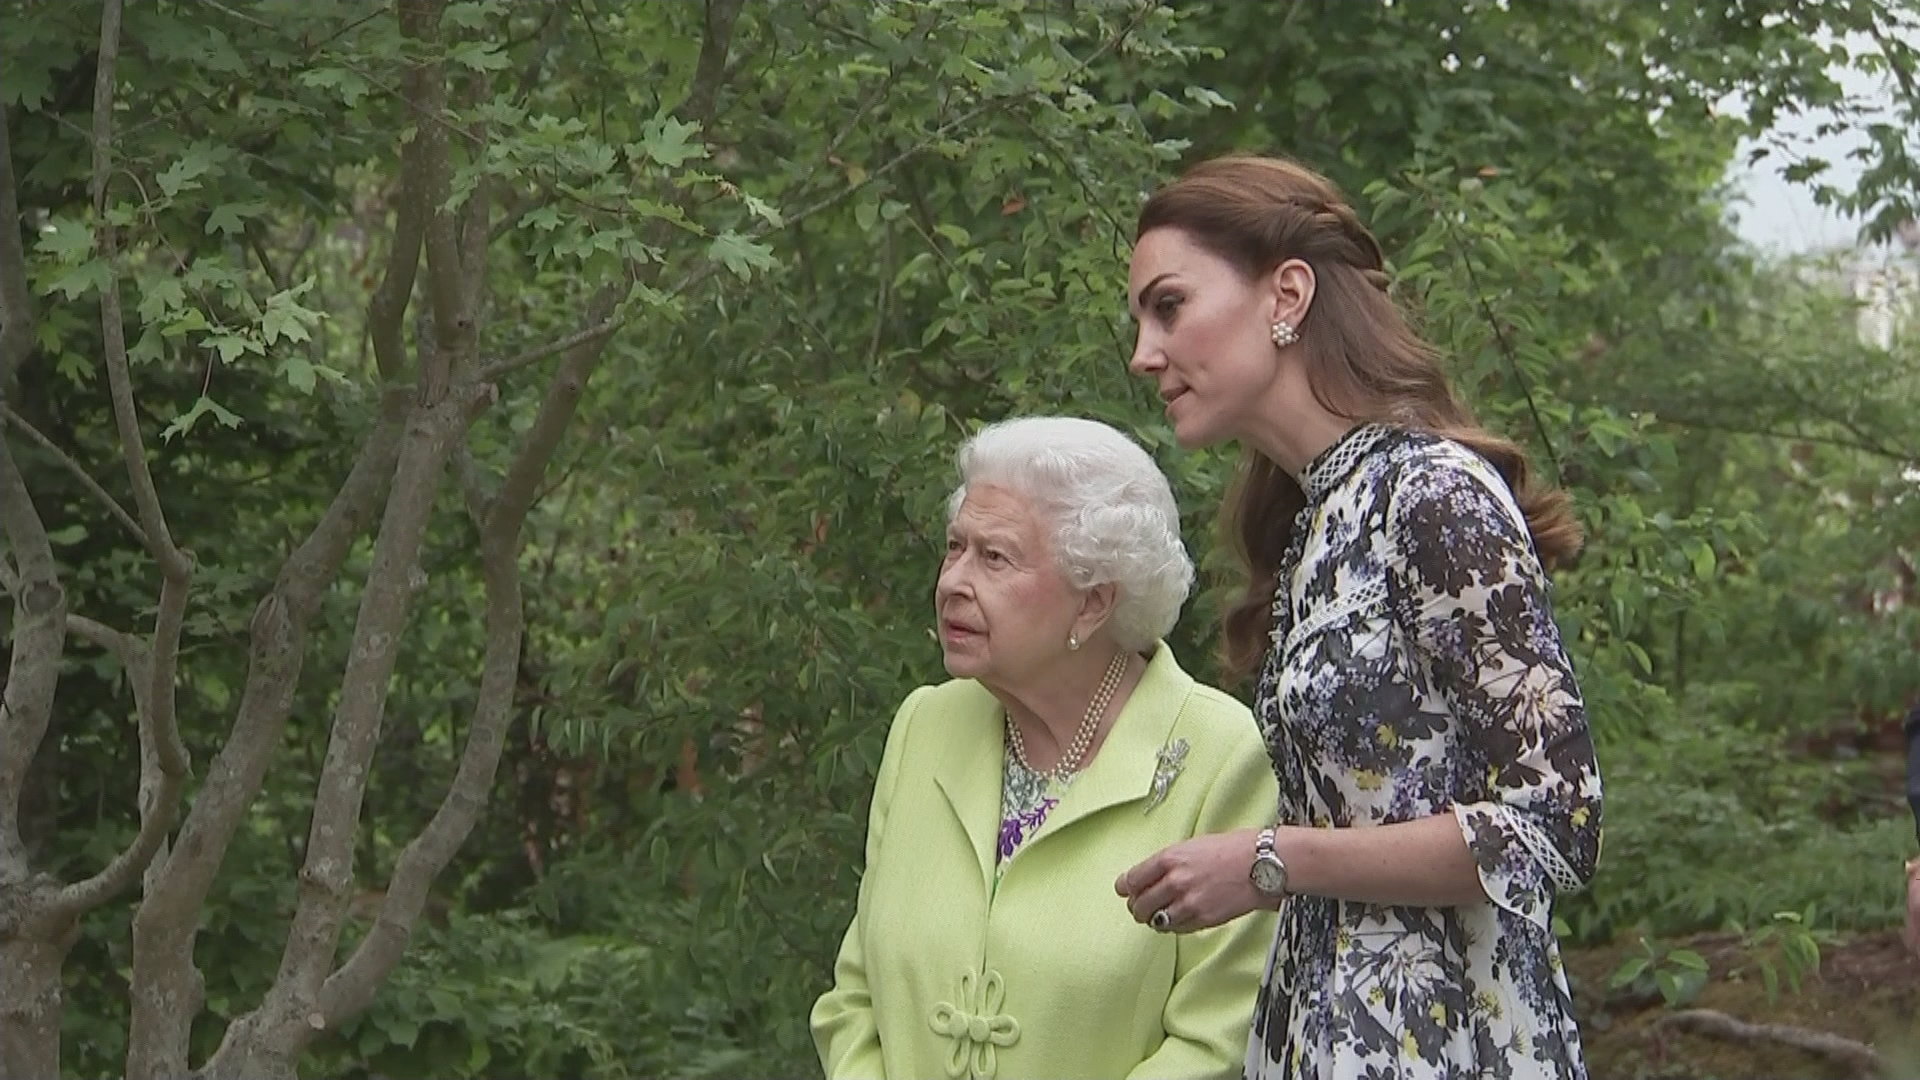 The Queen paid tribute to Meghan Markle and Prince Harry while visiting Kate Middleton's garden